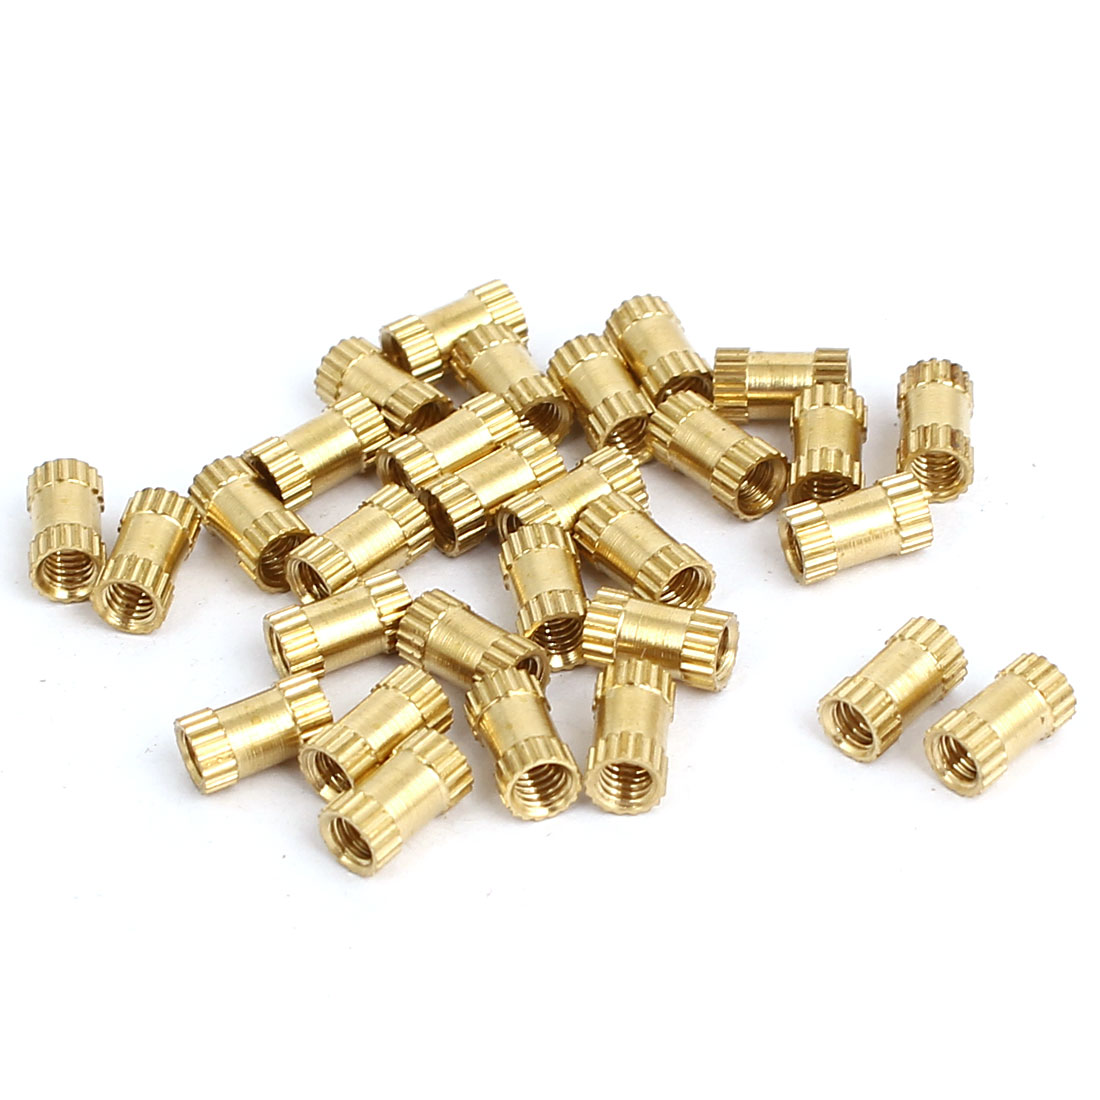 M2.5x6mmx3.5mm Female Thread Brass Knurled Insert Embedded Nuts Gold Tone 30pcs